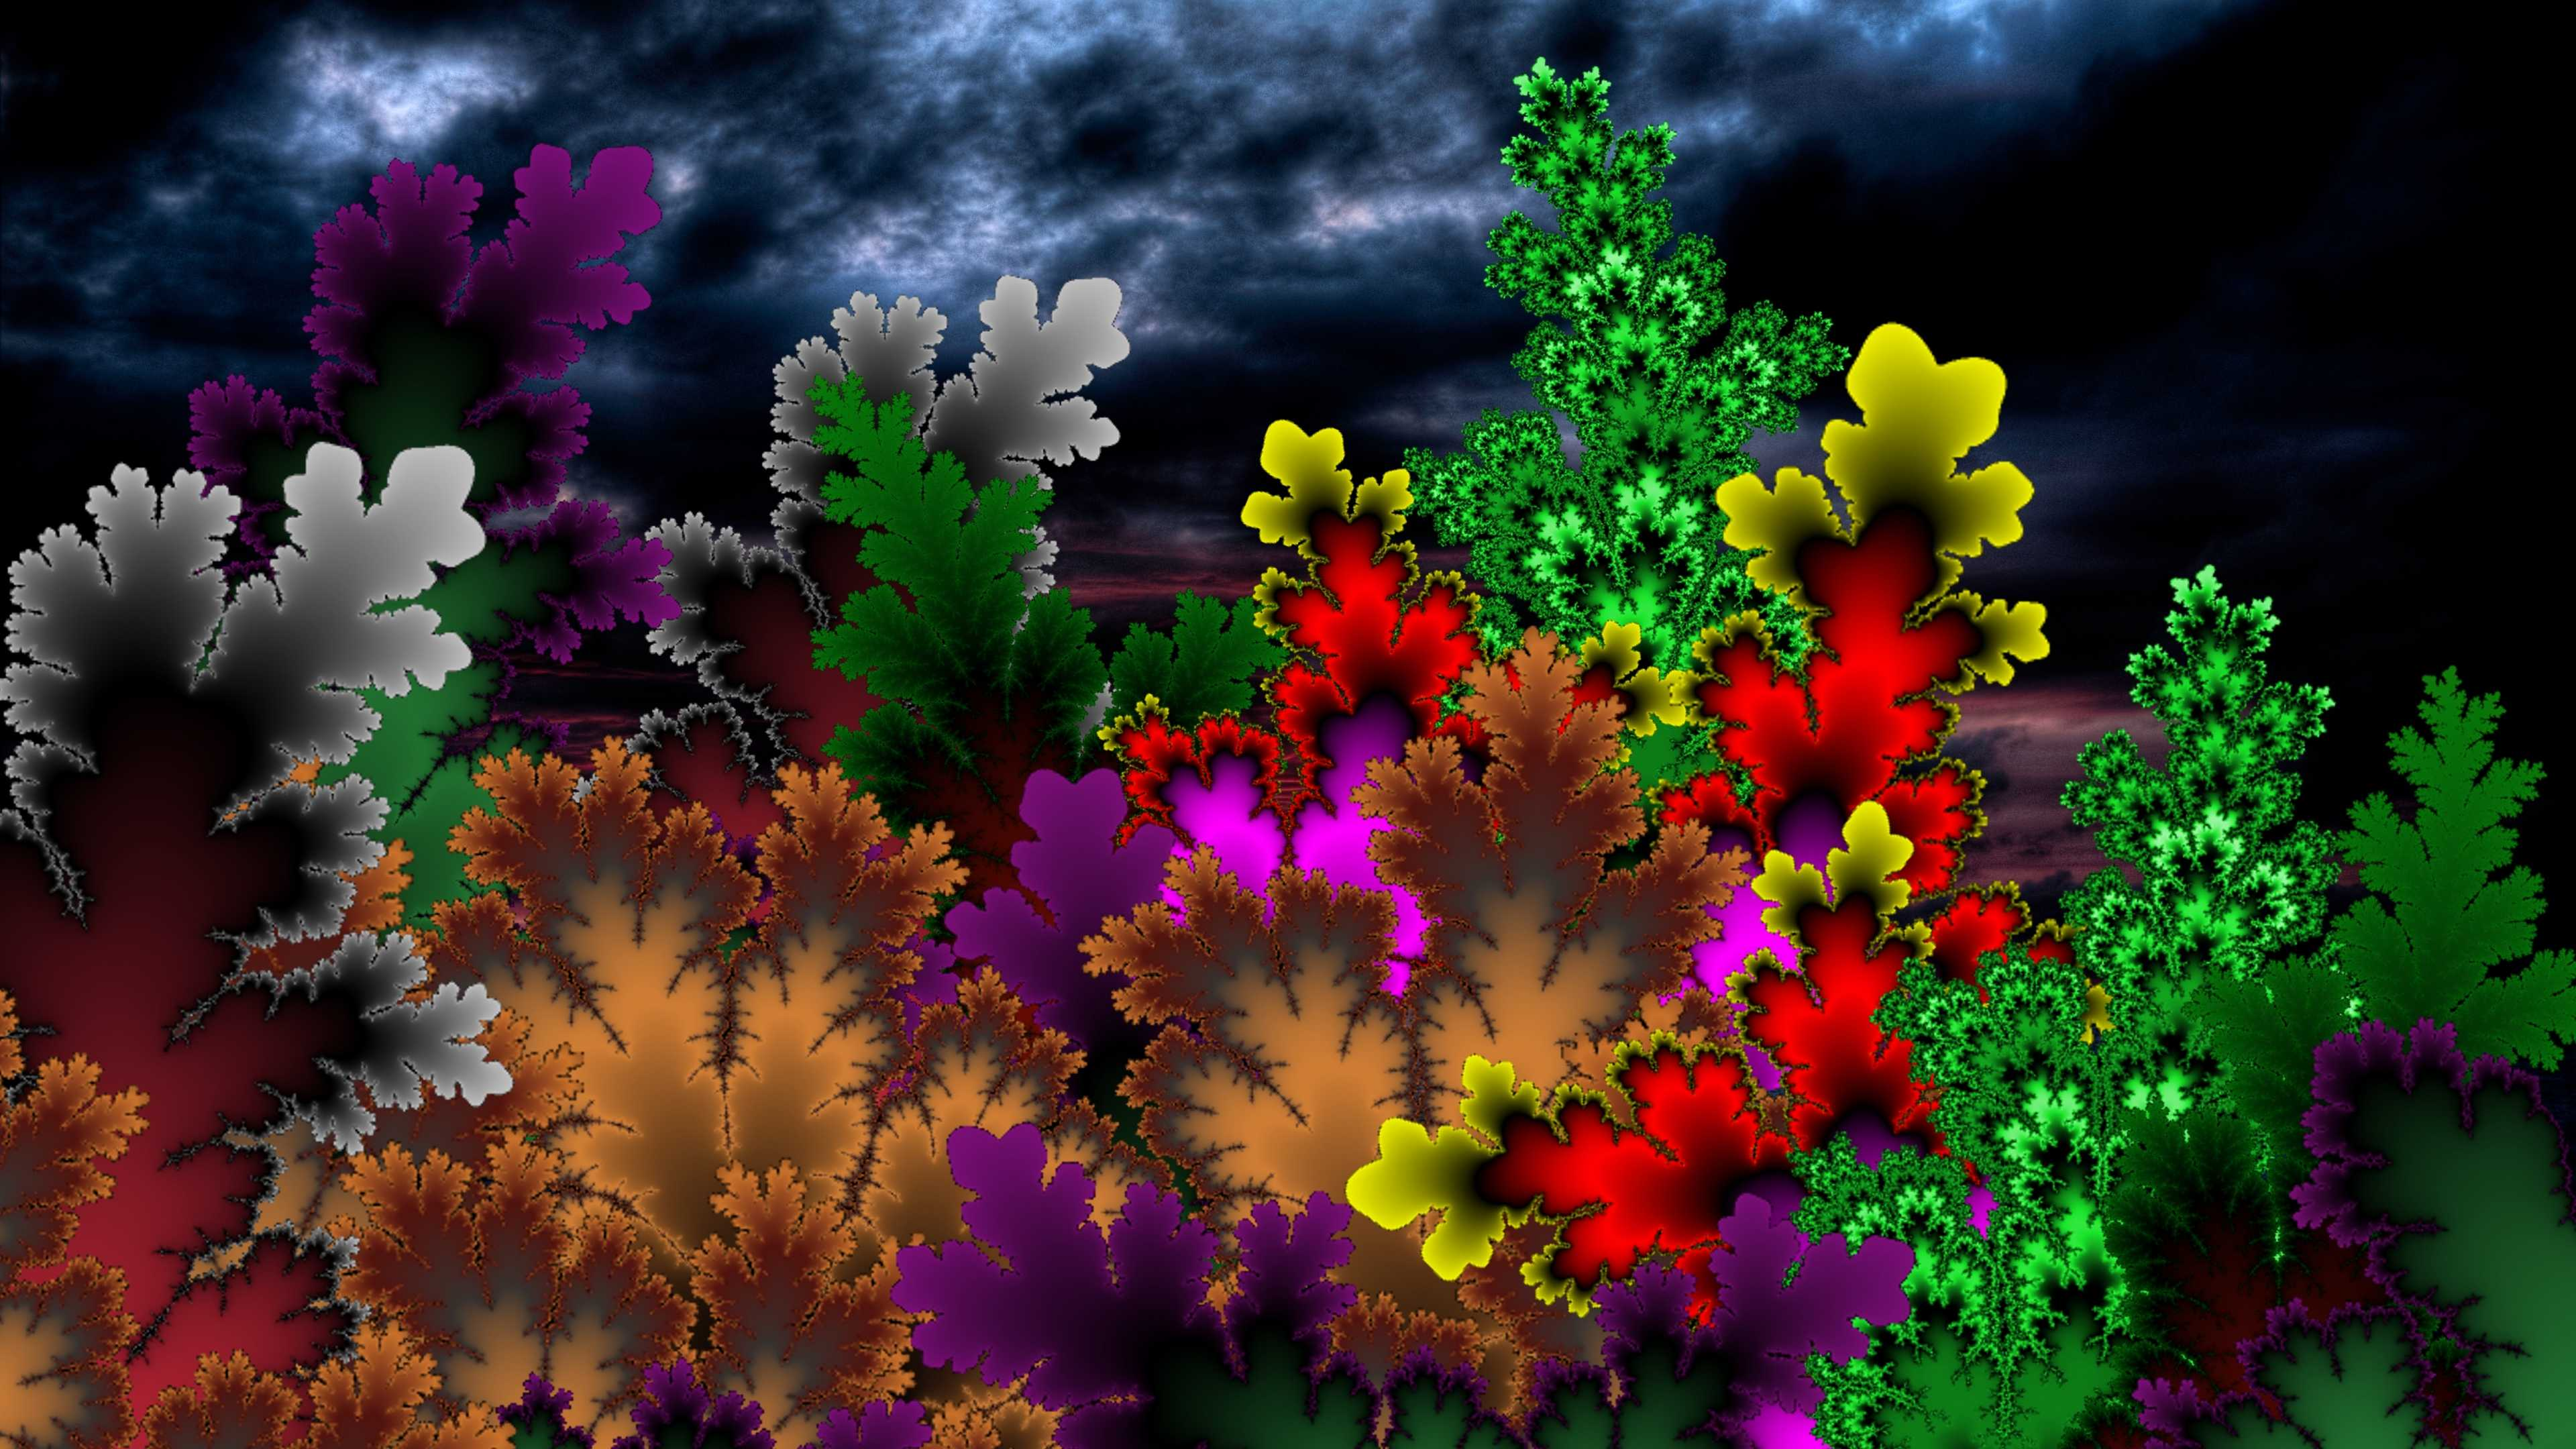 Abstract colorful leaves 4k ultra hd wallpaper background image 3840x2160 id 713671 - 4k colorful wallpaper ...